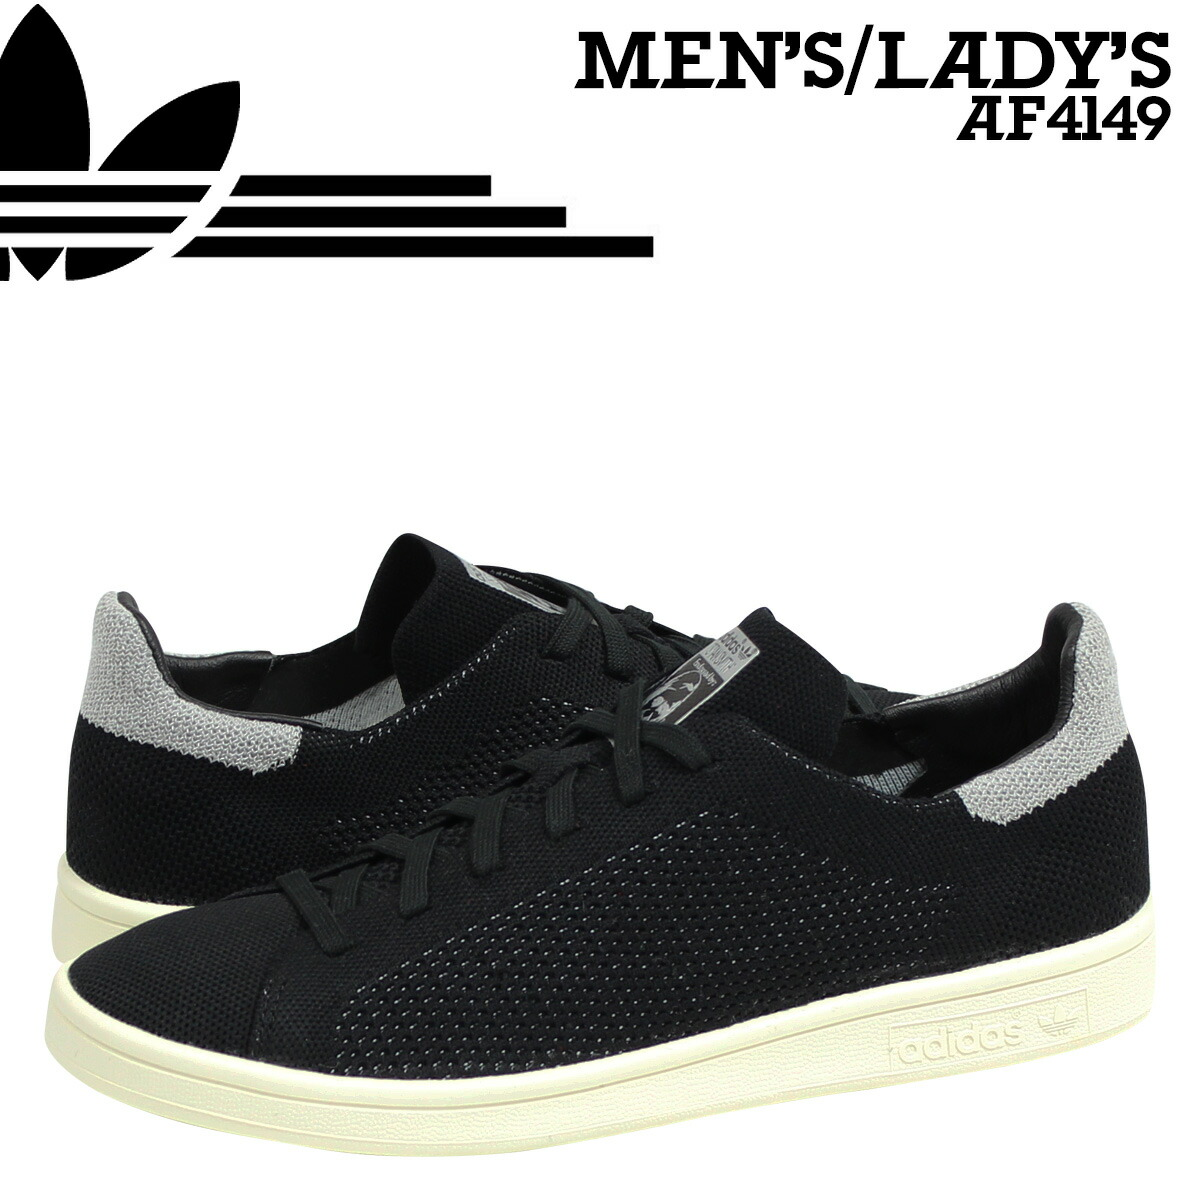 Stan Smith Primeknit Buy Online